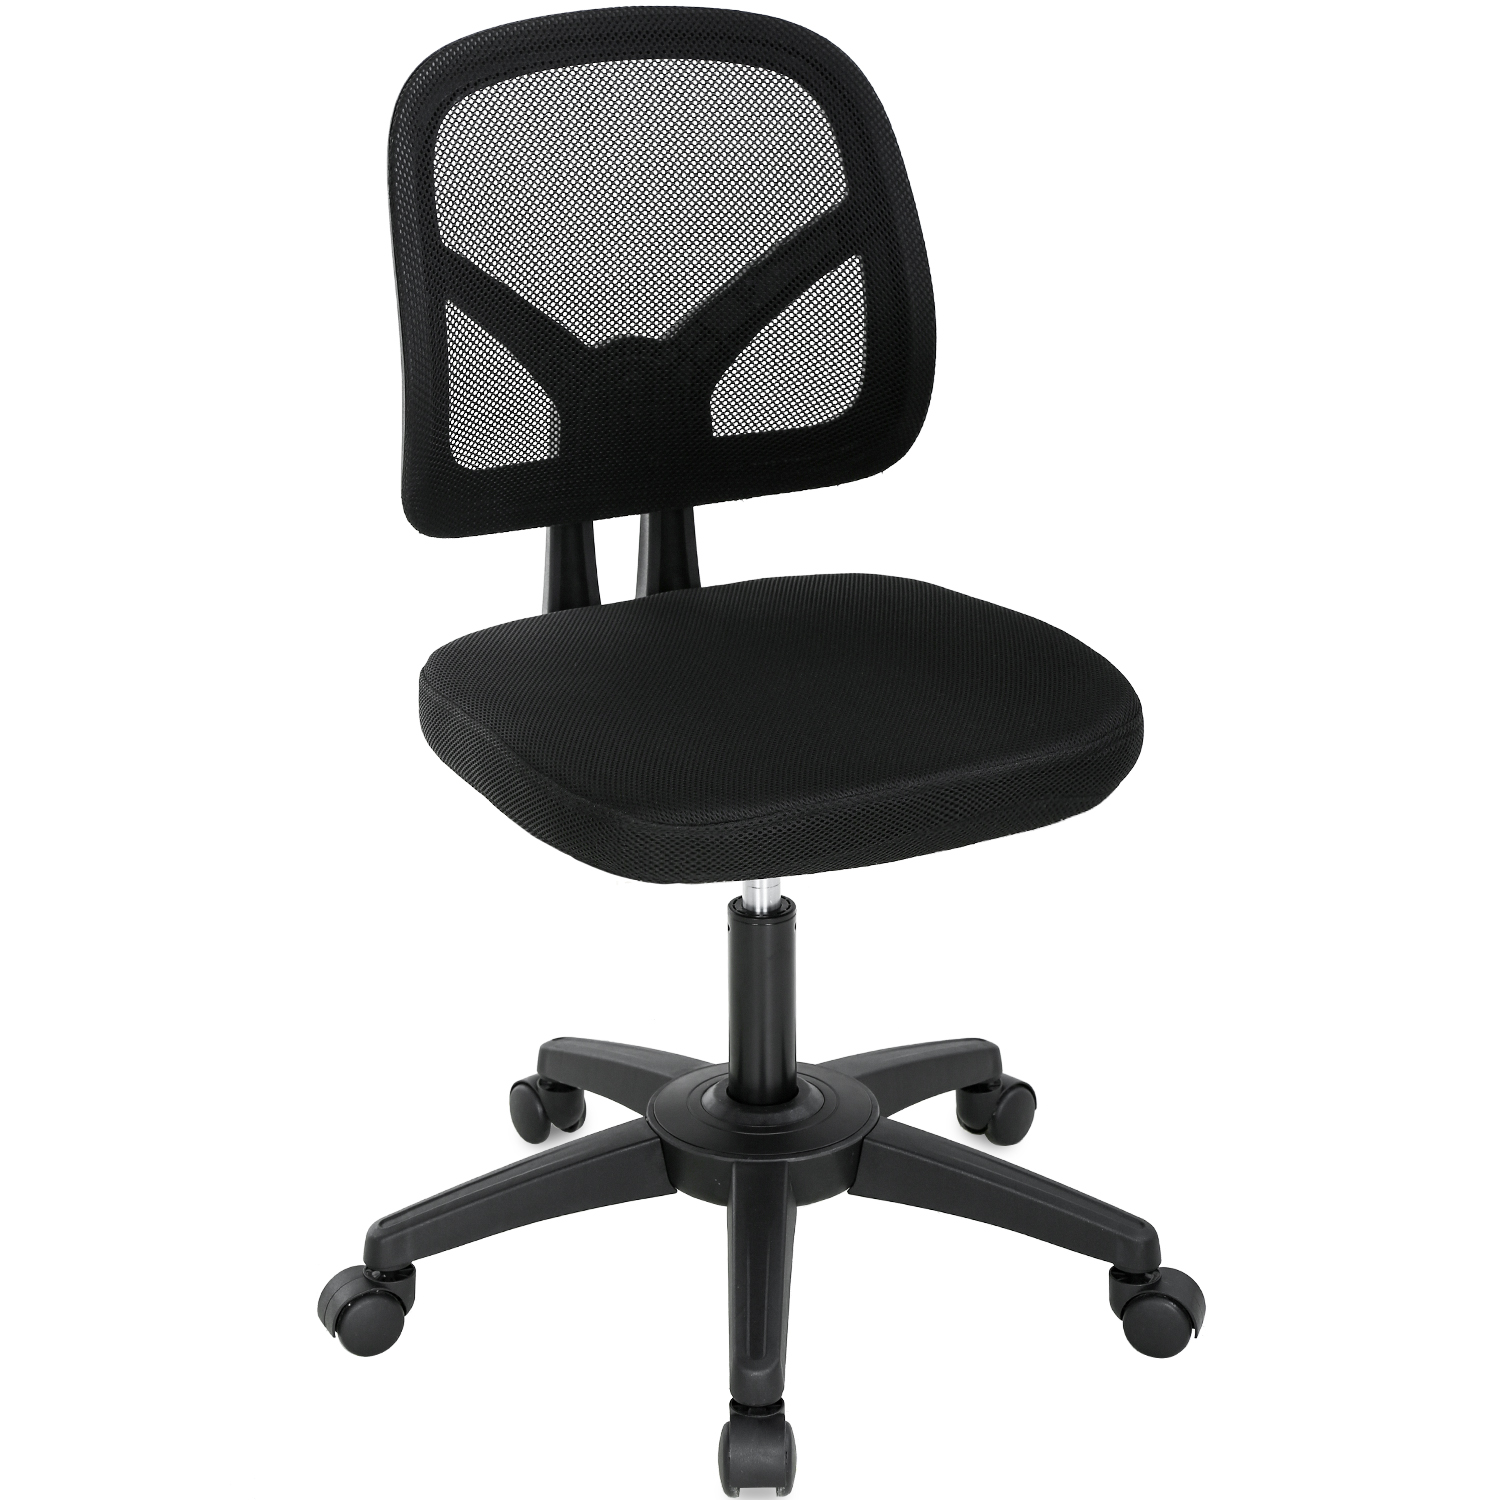 Picture of: Home Office Chair Ergonomic Desk Chair Mesh Computer Chair With Lumbar Support Swivel Rolling Executive Adjustable Task Chair For Women Adults Black Walmart Com Walmart Com